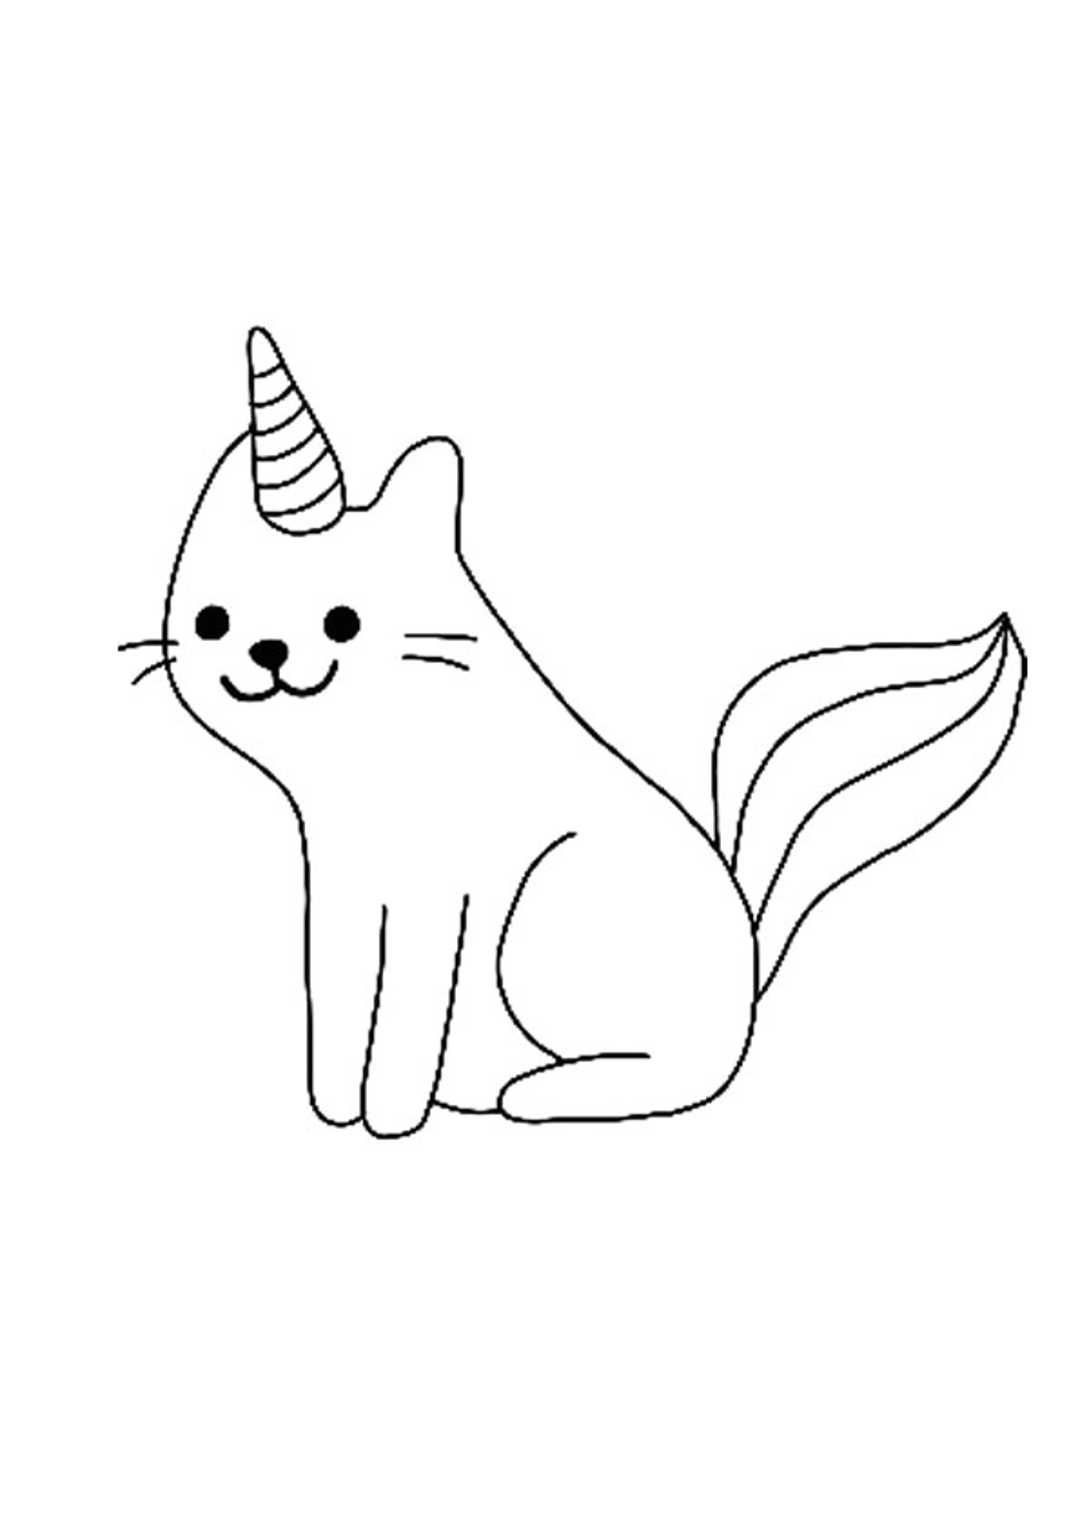 Unicorn Cat Coloring Pages Unicorn Coloring Pages Mandala Coloring Pages Cat Coloring Page